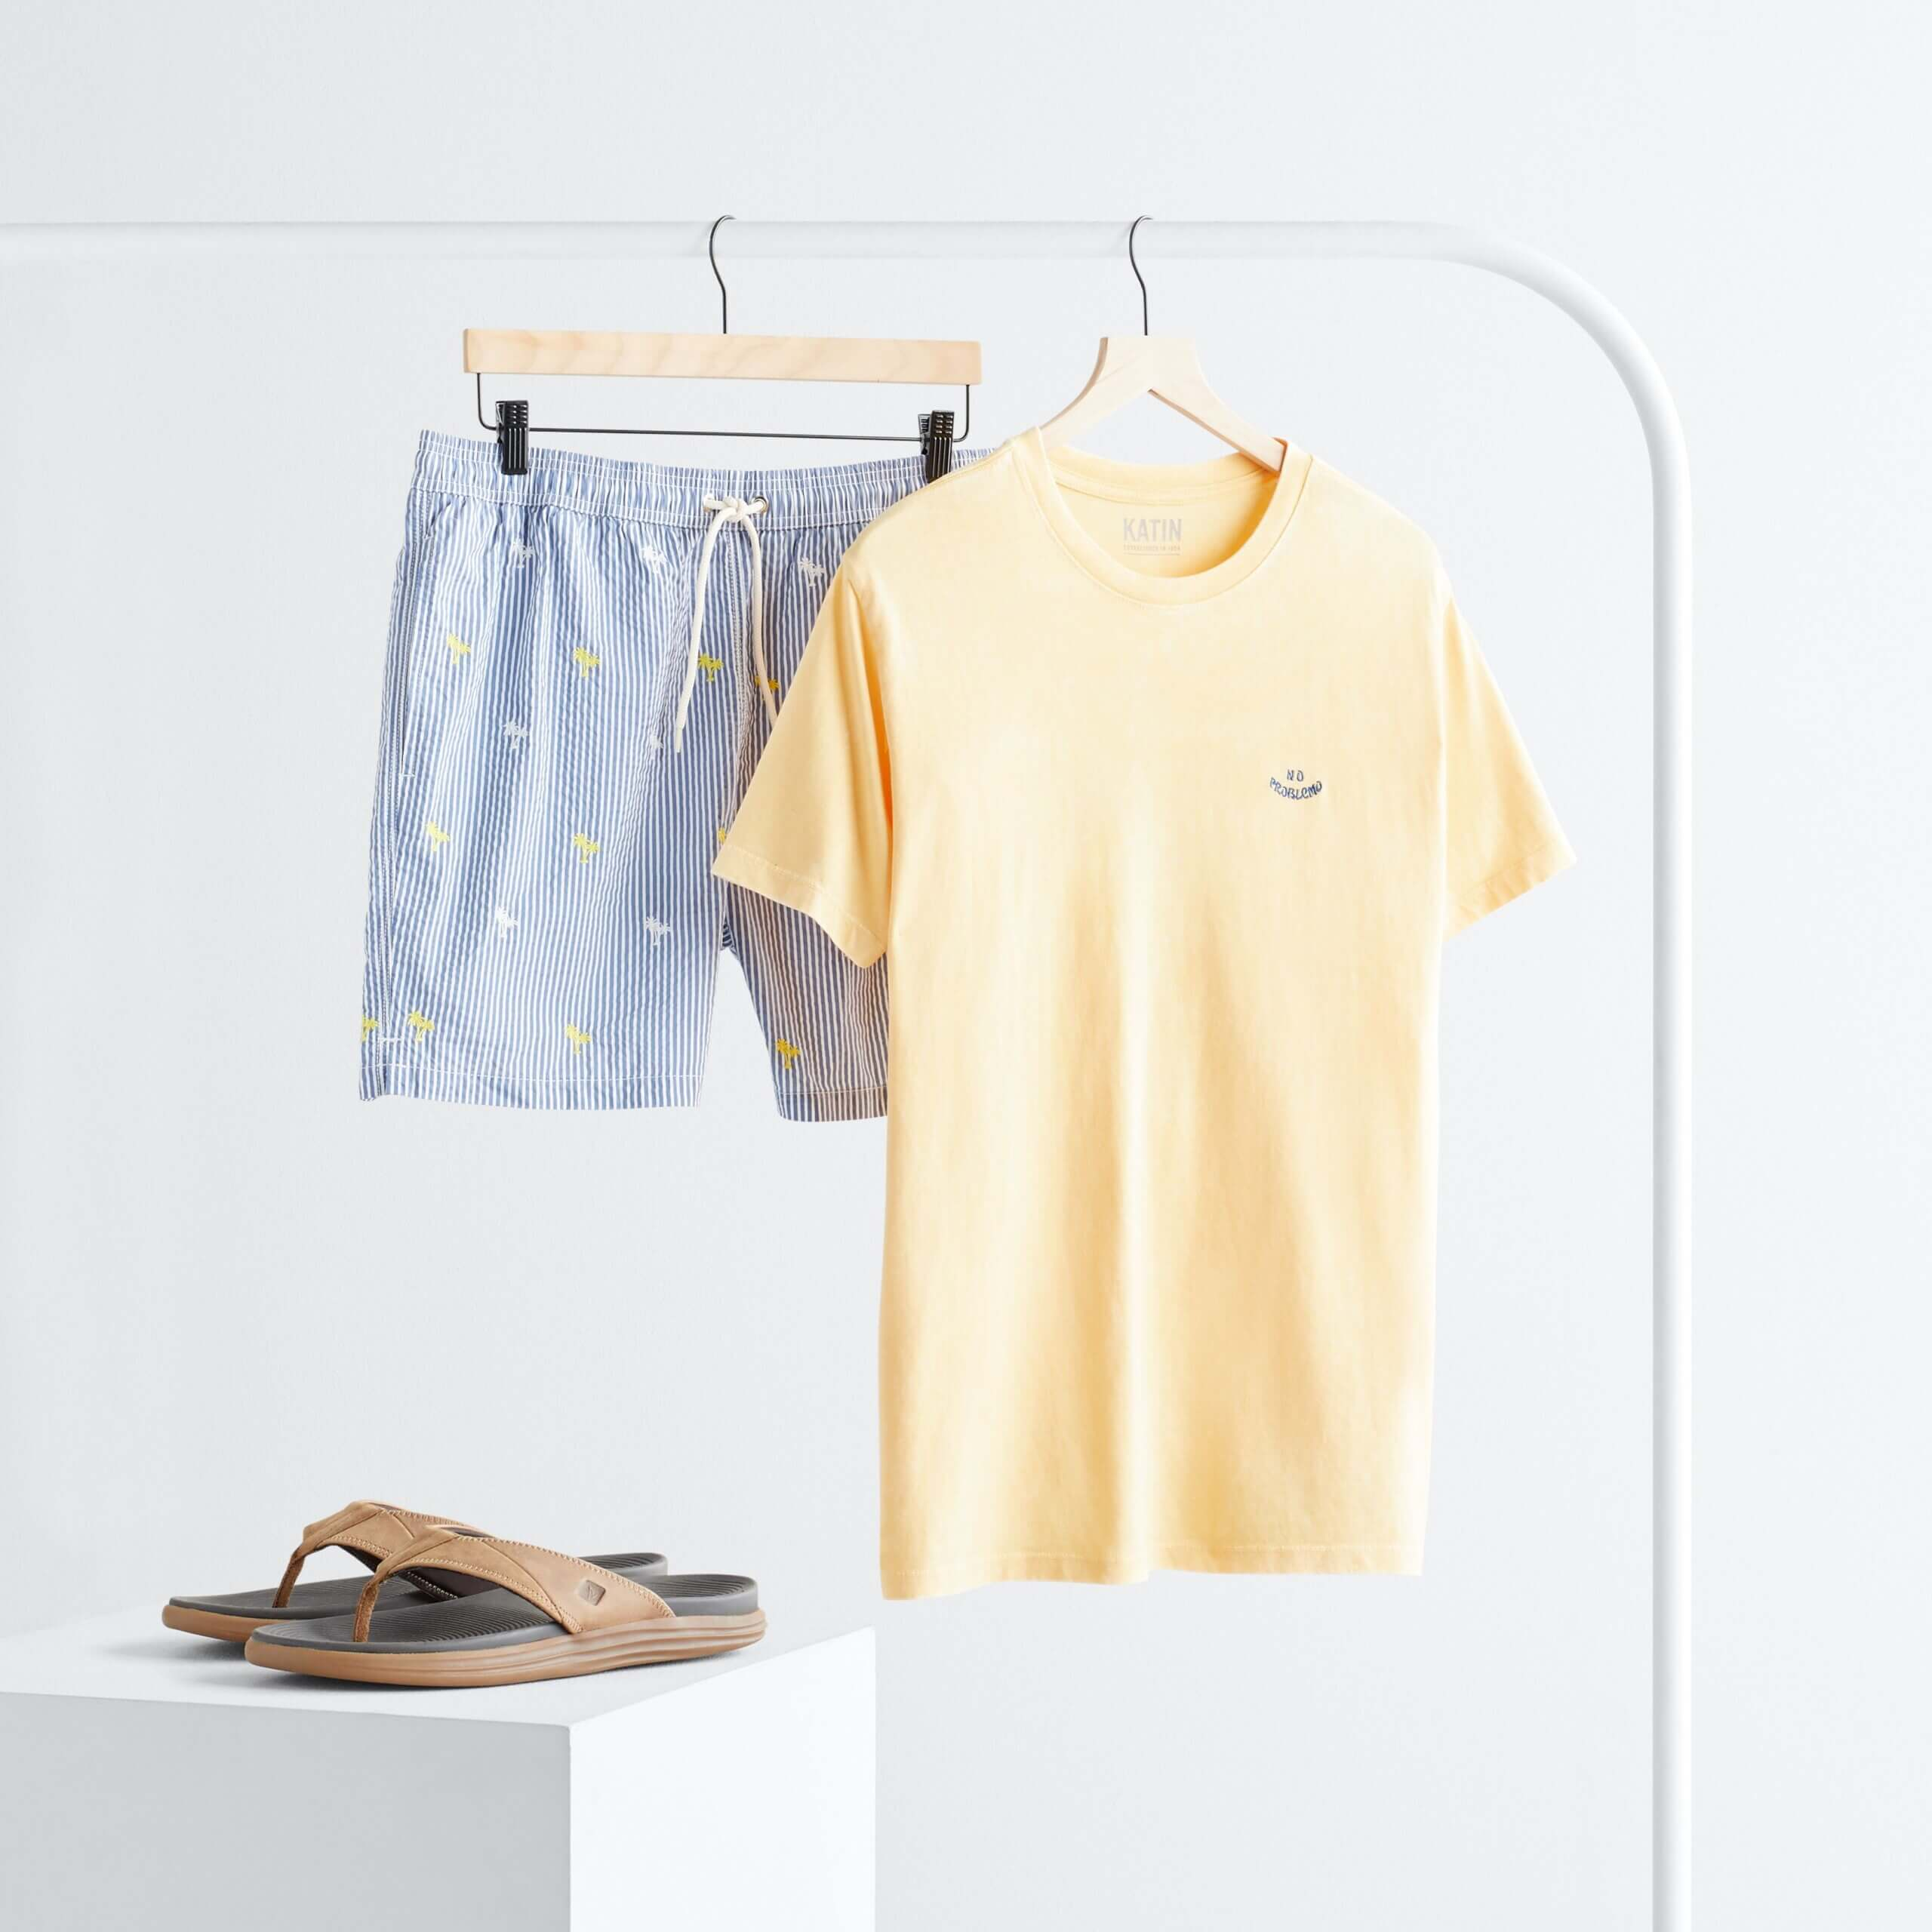 Stitch Fix Men's rack image with yellow short sleeve graphic tee and blue striped shorts hanging on white rack next to brown flip flops on white block.